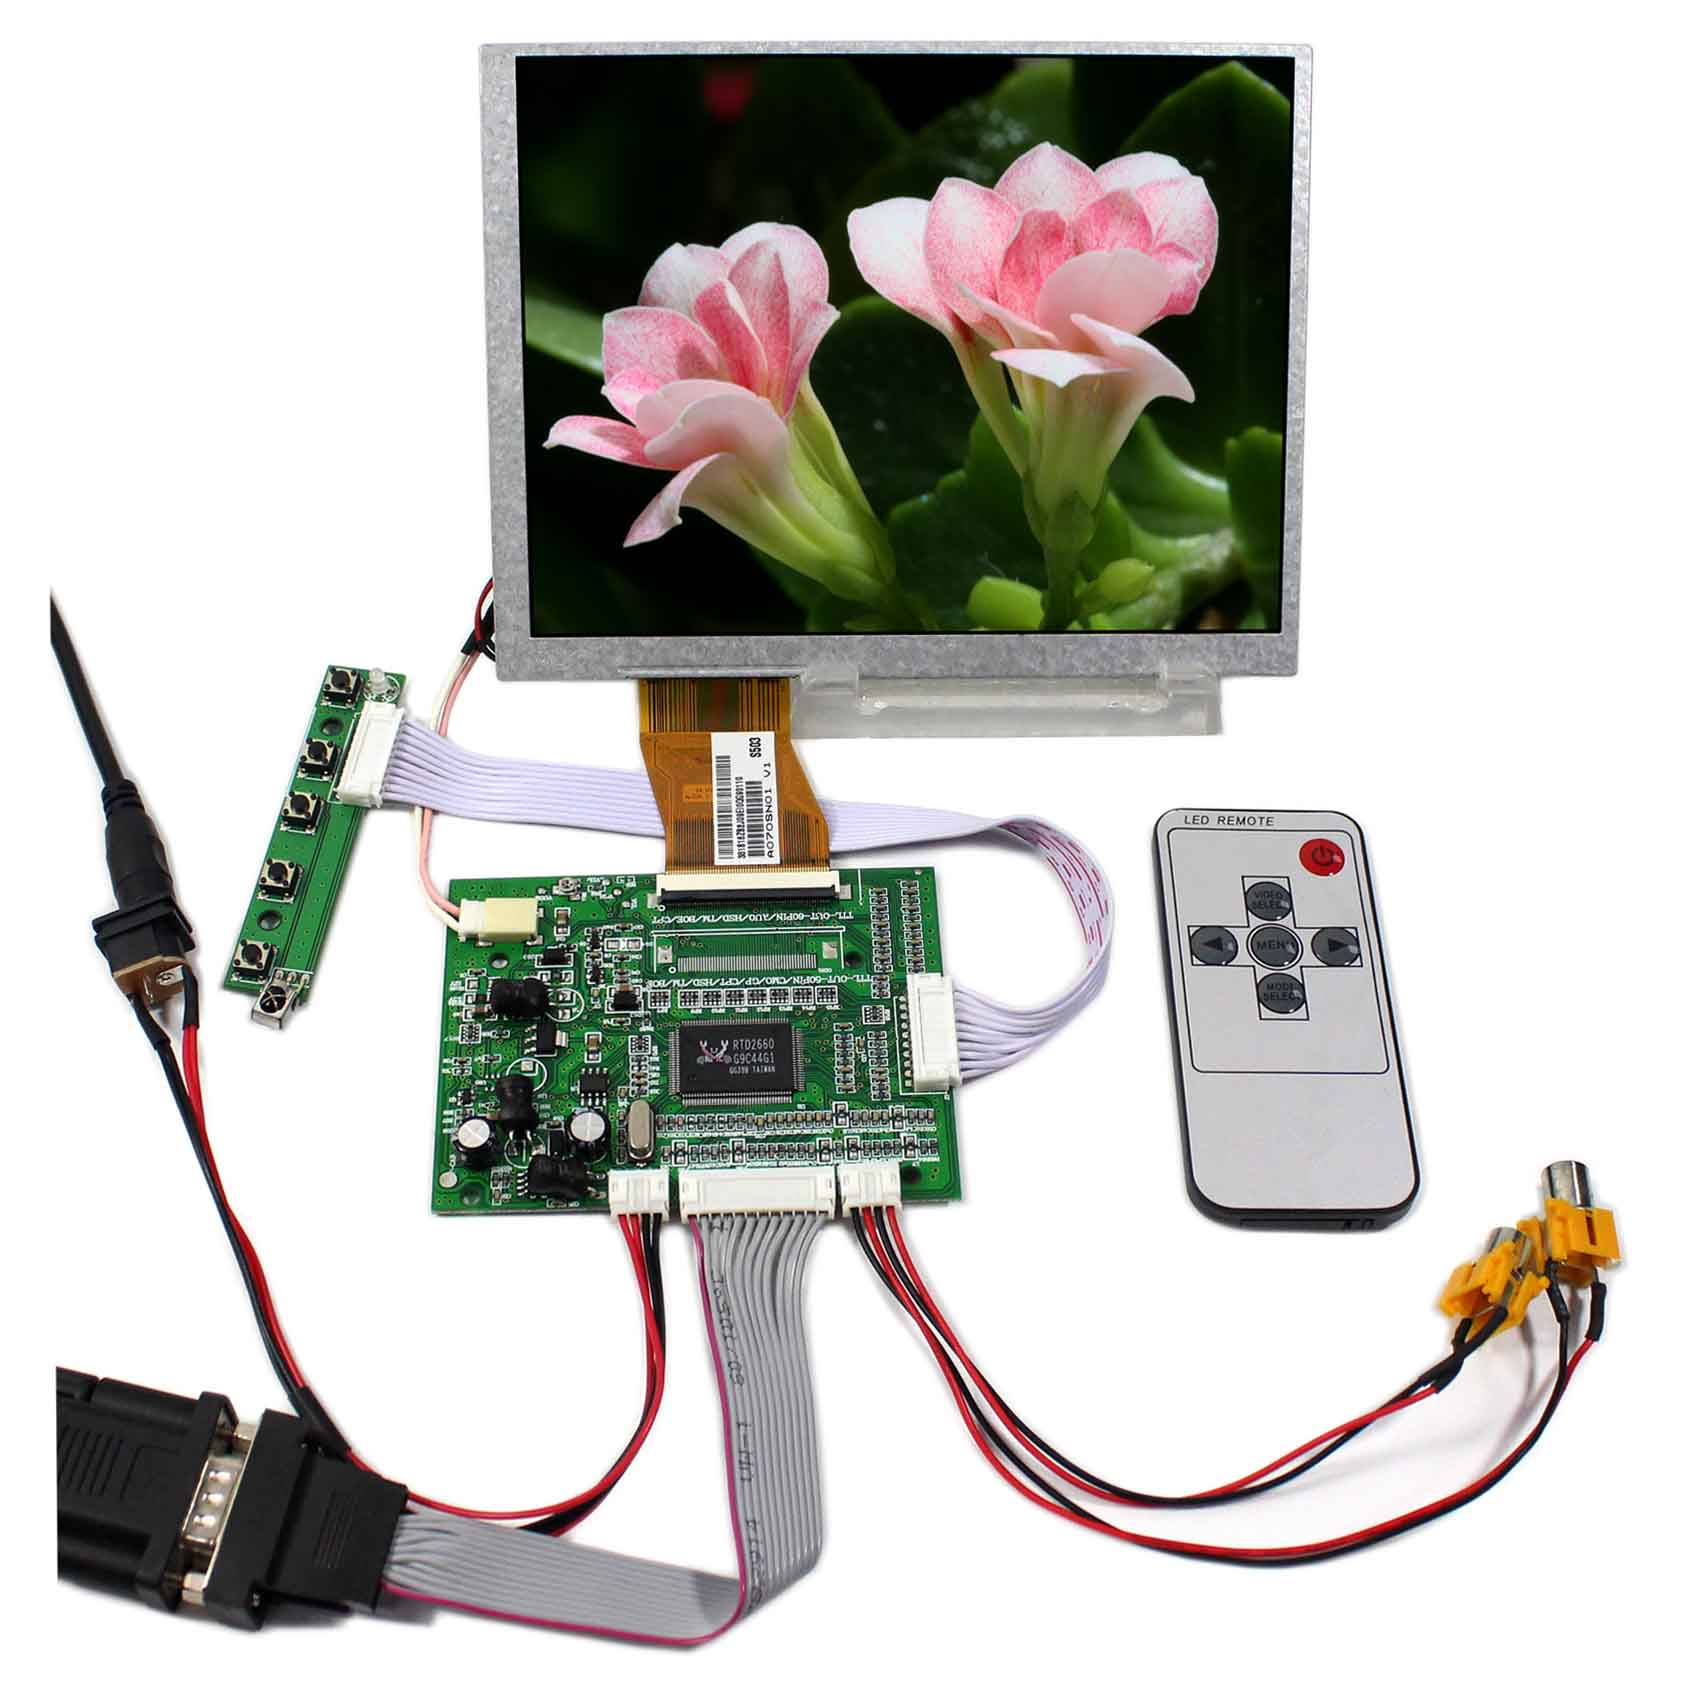 7inch 800x600 A070SN01 4:3 LCD Screen With VGA+AV LCD Controller Board VS-TY5060-V1 a070sn01 v 1 v1 original a grade 7 inch 800 600 tft 4 3 lcd screen with touch screen for car navigation lcd